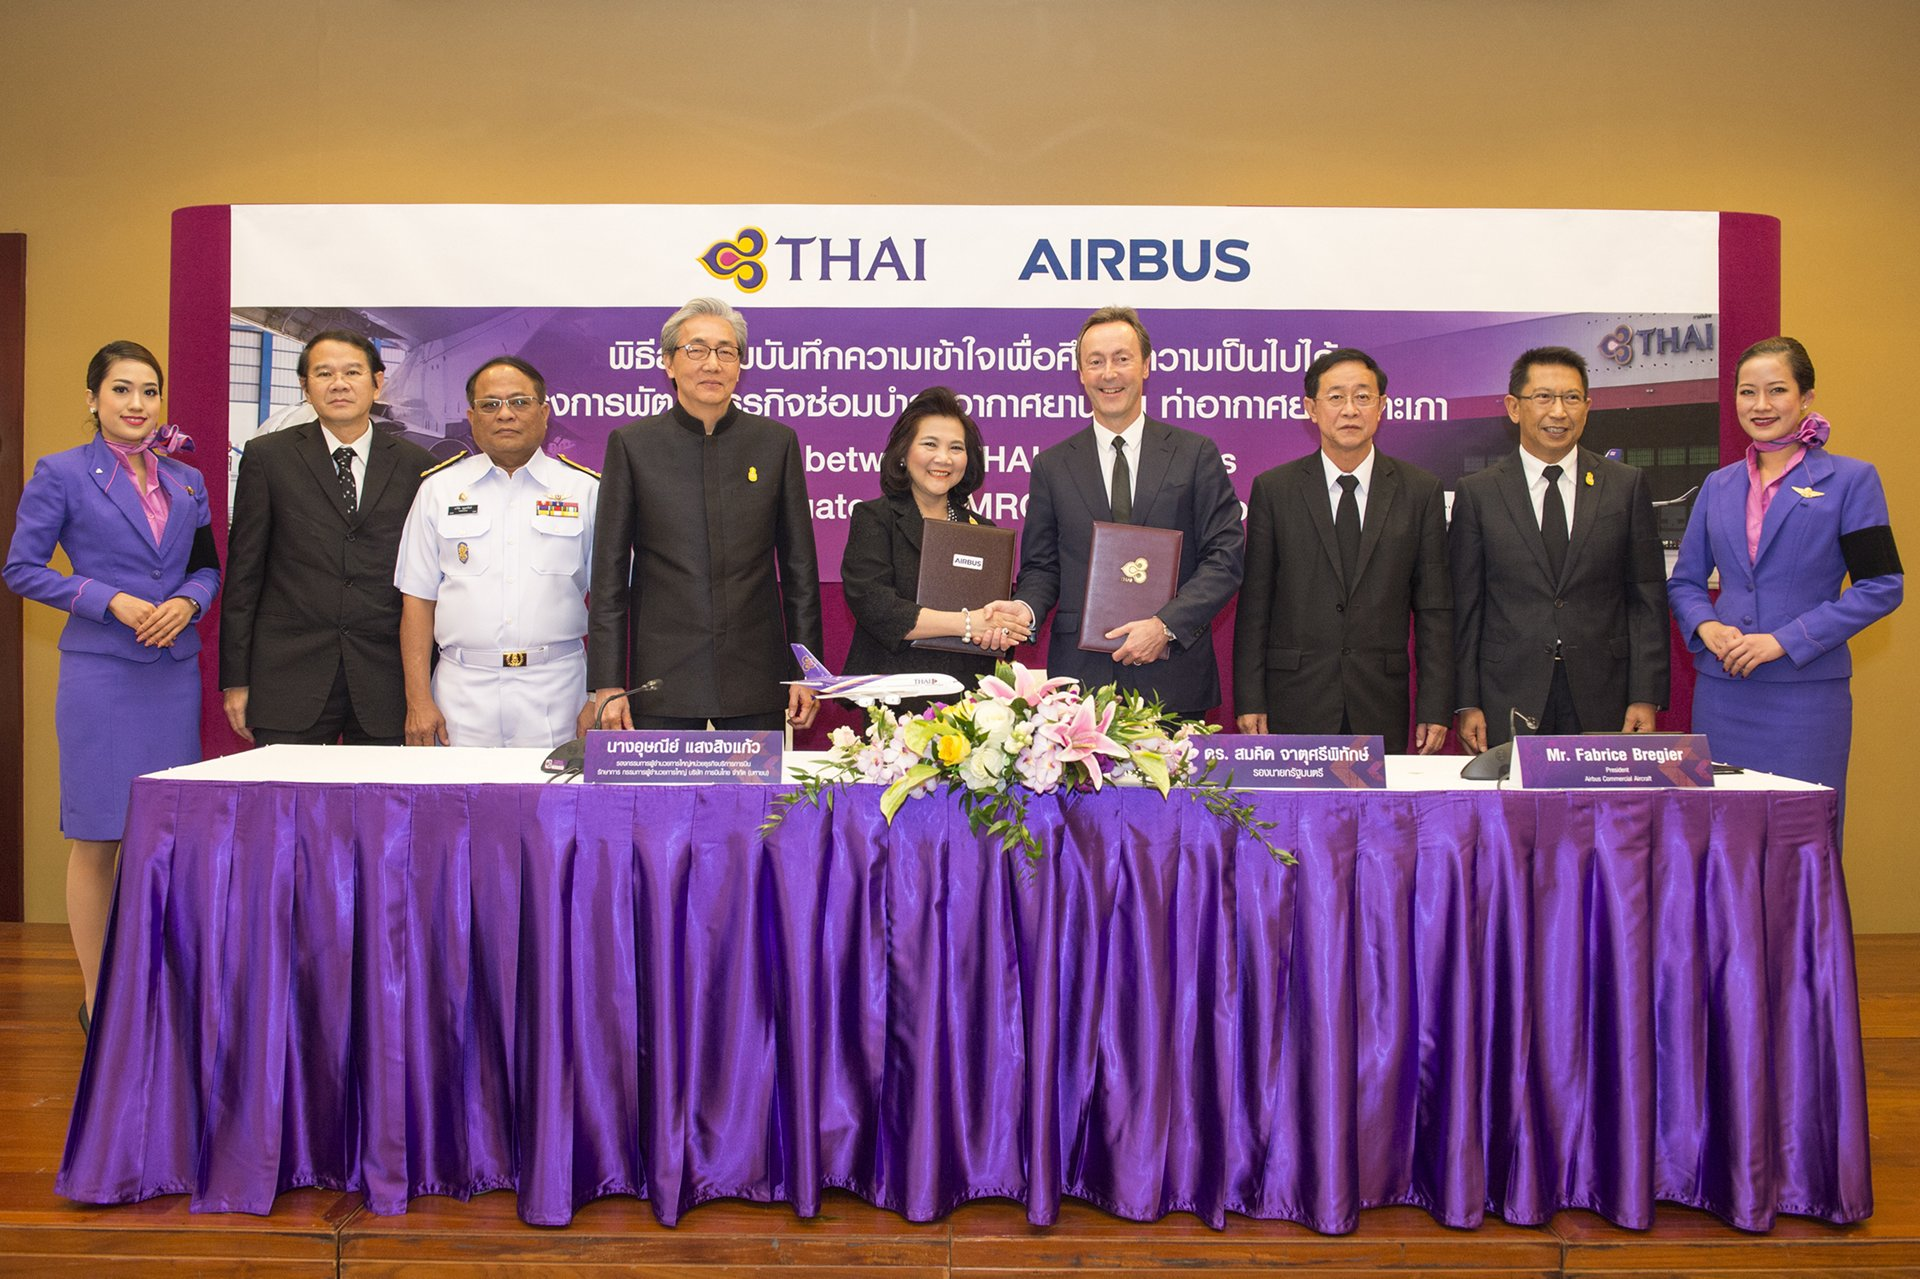 Airbus signs MOU with THAI to develop new MRO business 2